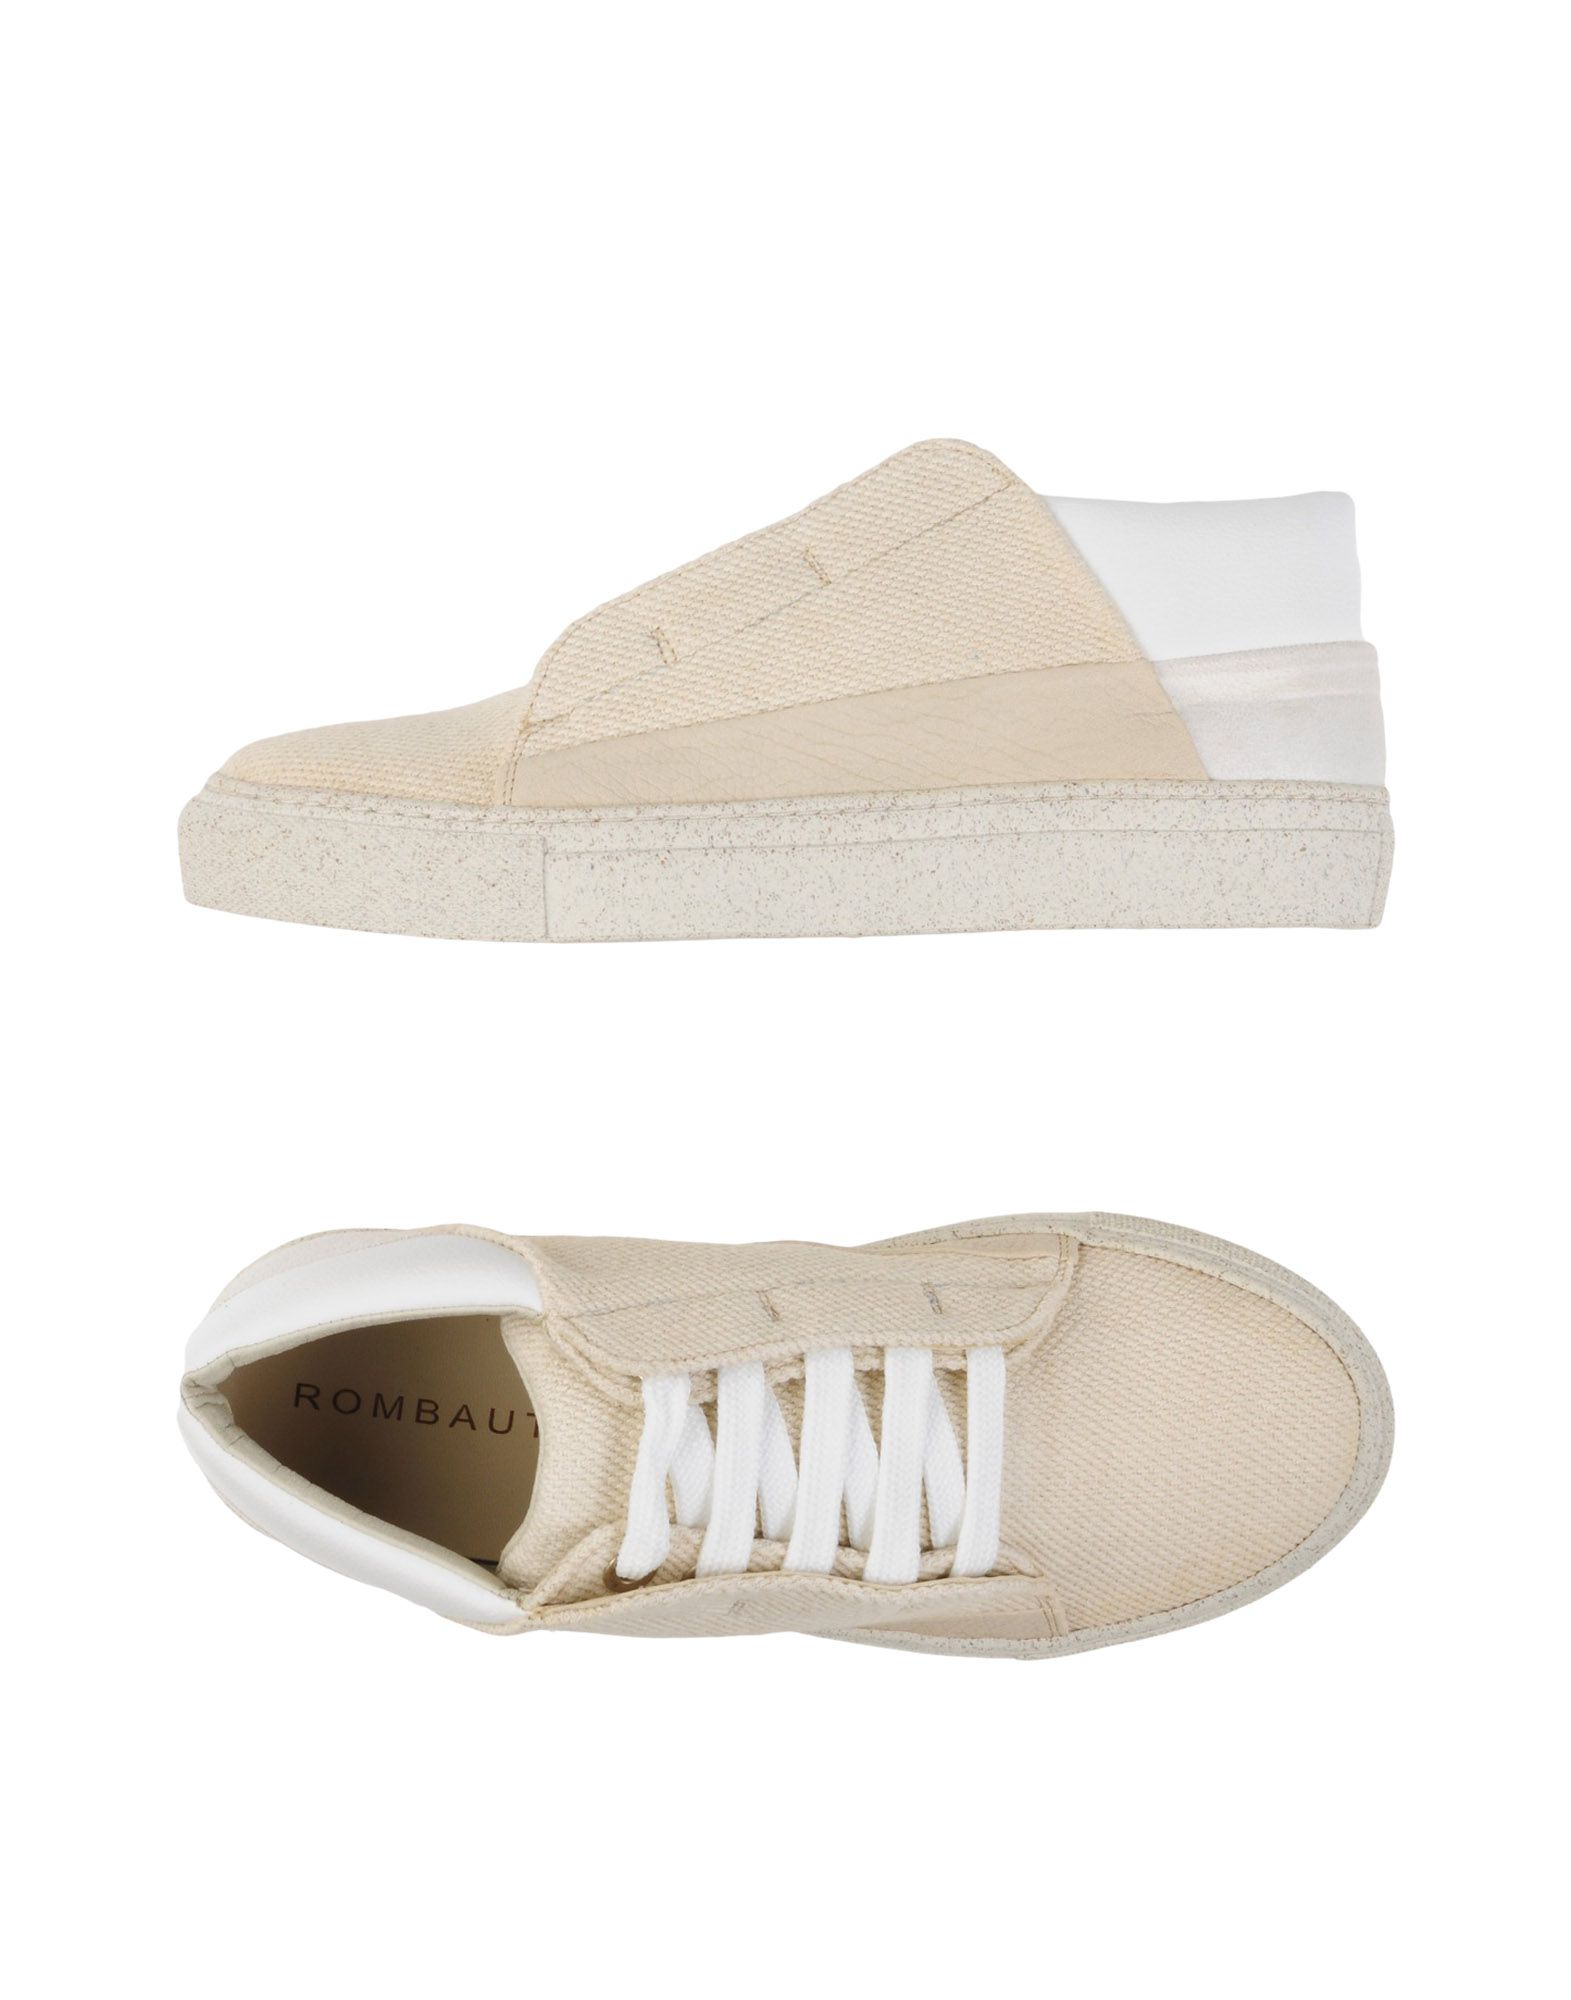 ROMBAUT Sneakers in Beige